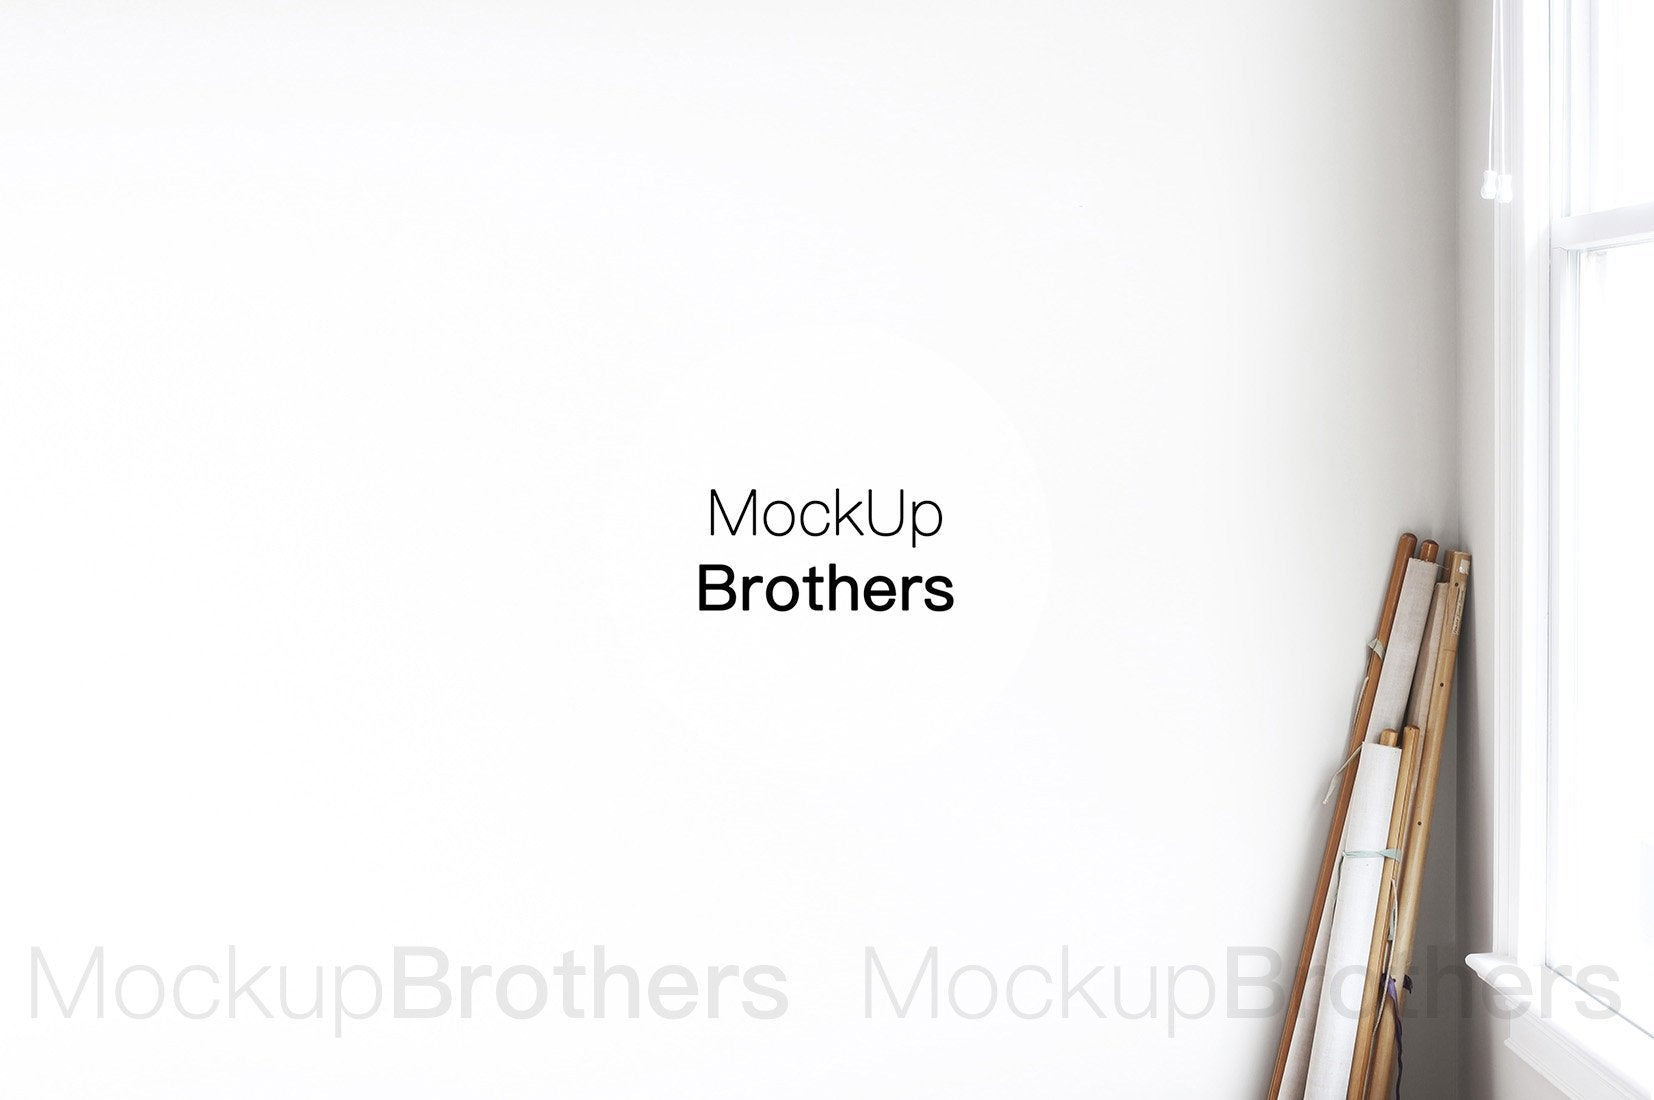 Gallery wall mockup by Mock up Brothers